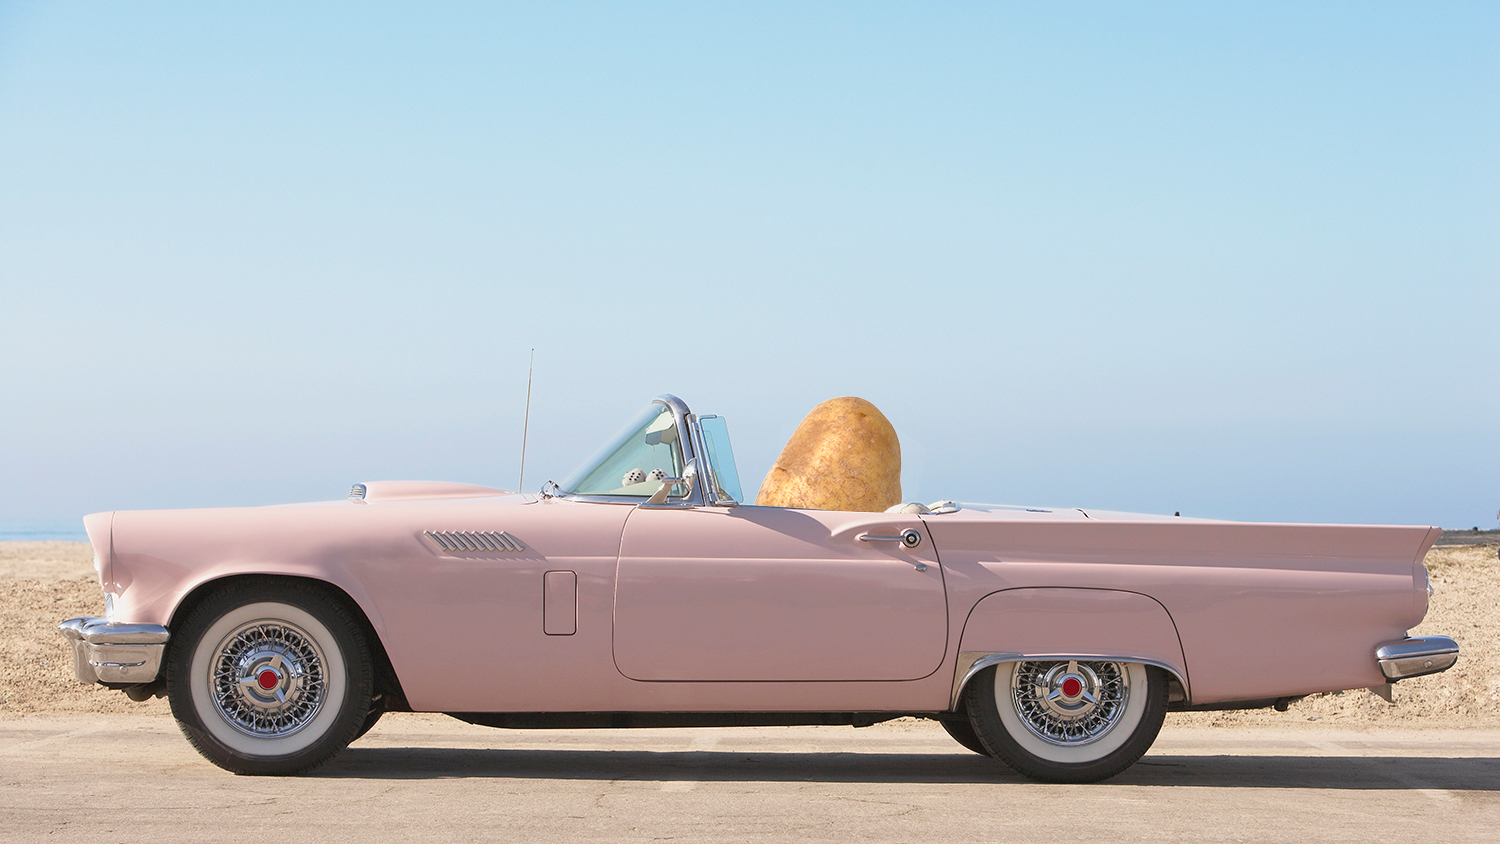 potato powered car